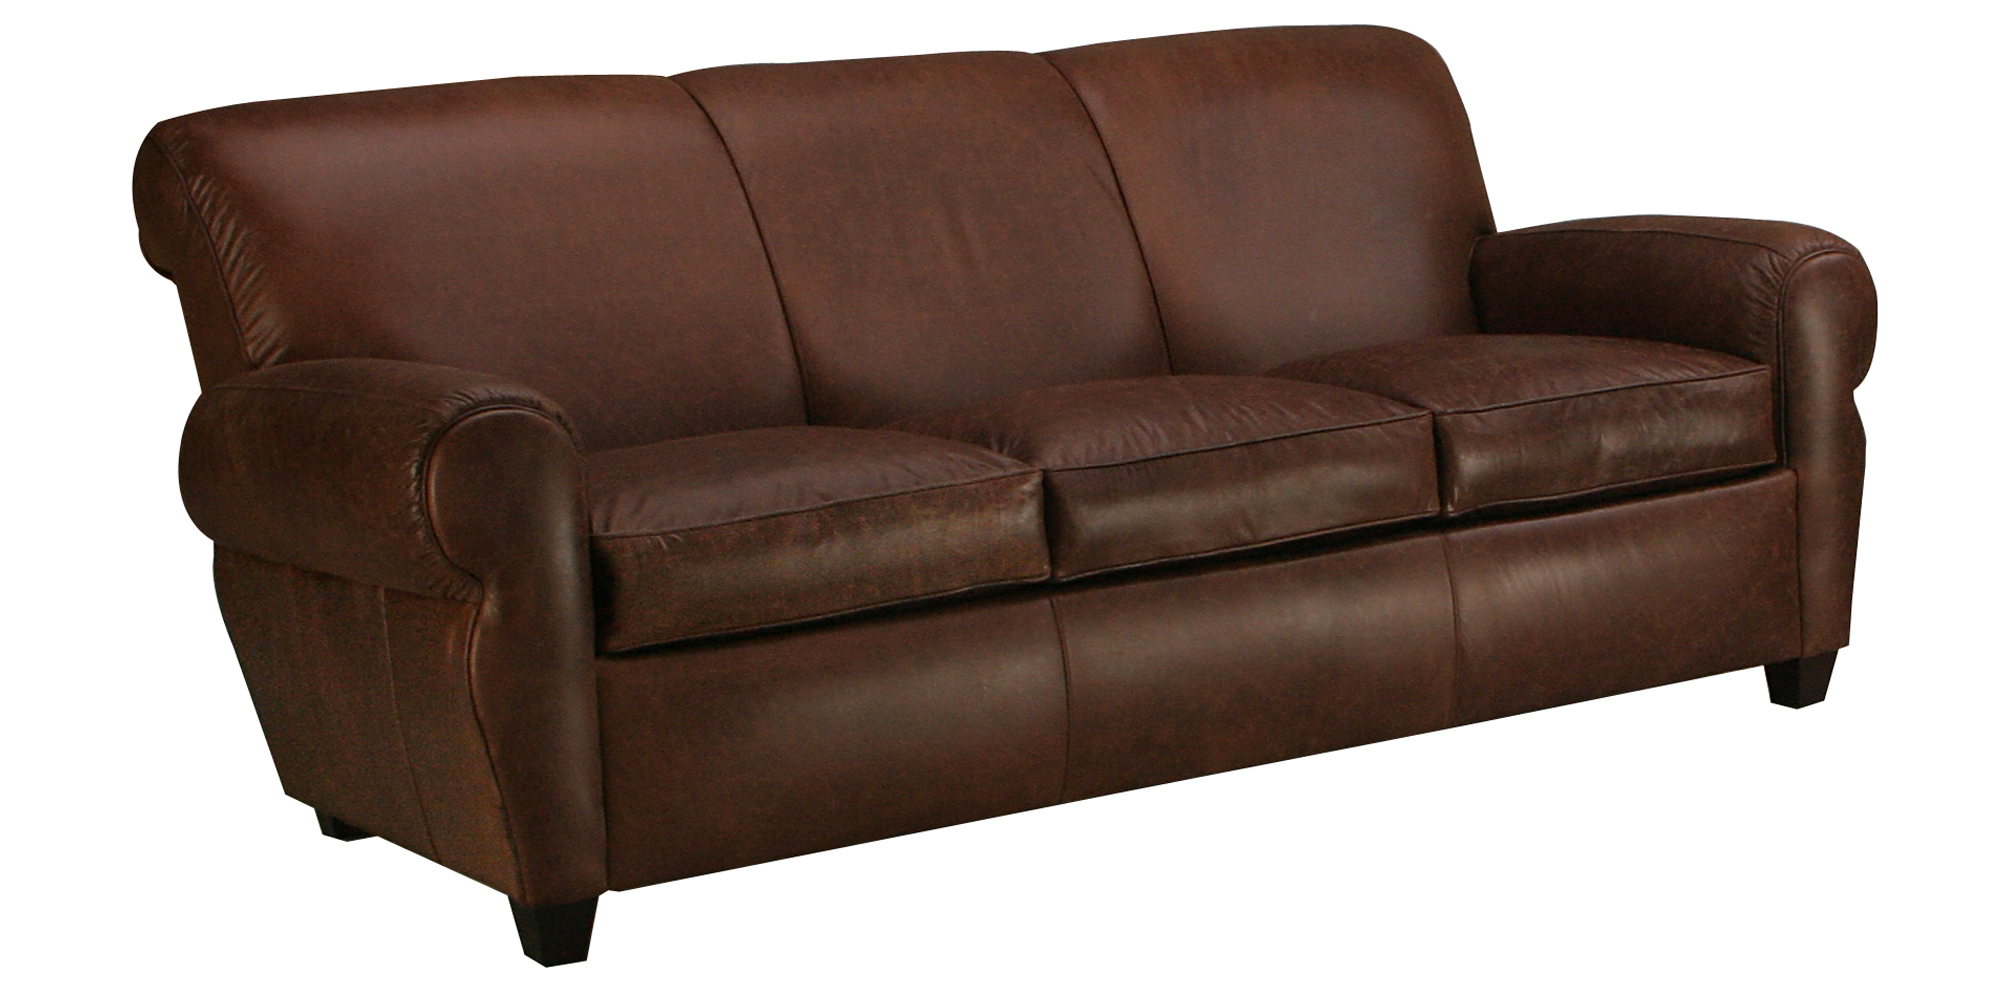 Vintage club leather sofa collection like manhattan club for Leather furniture